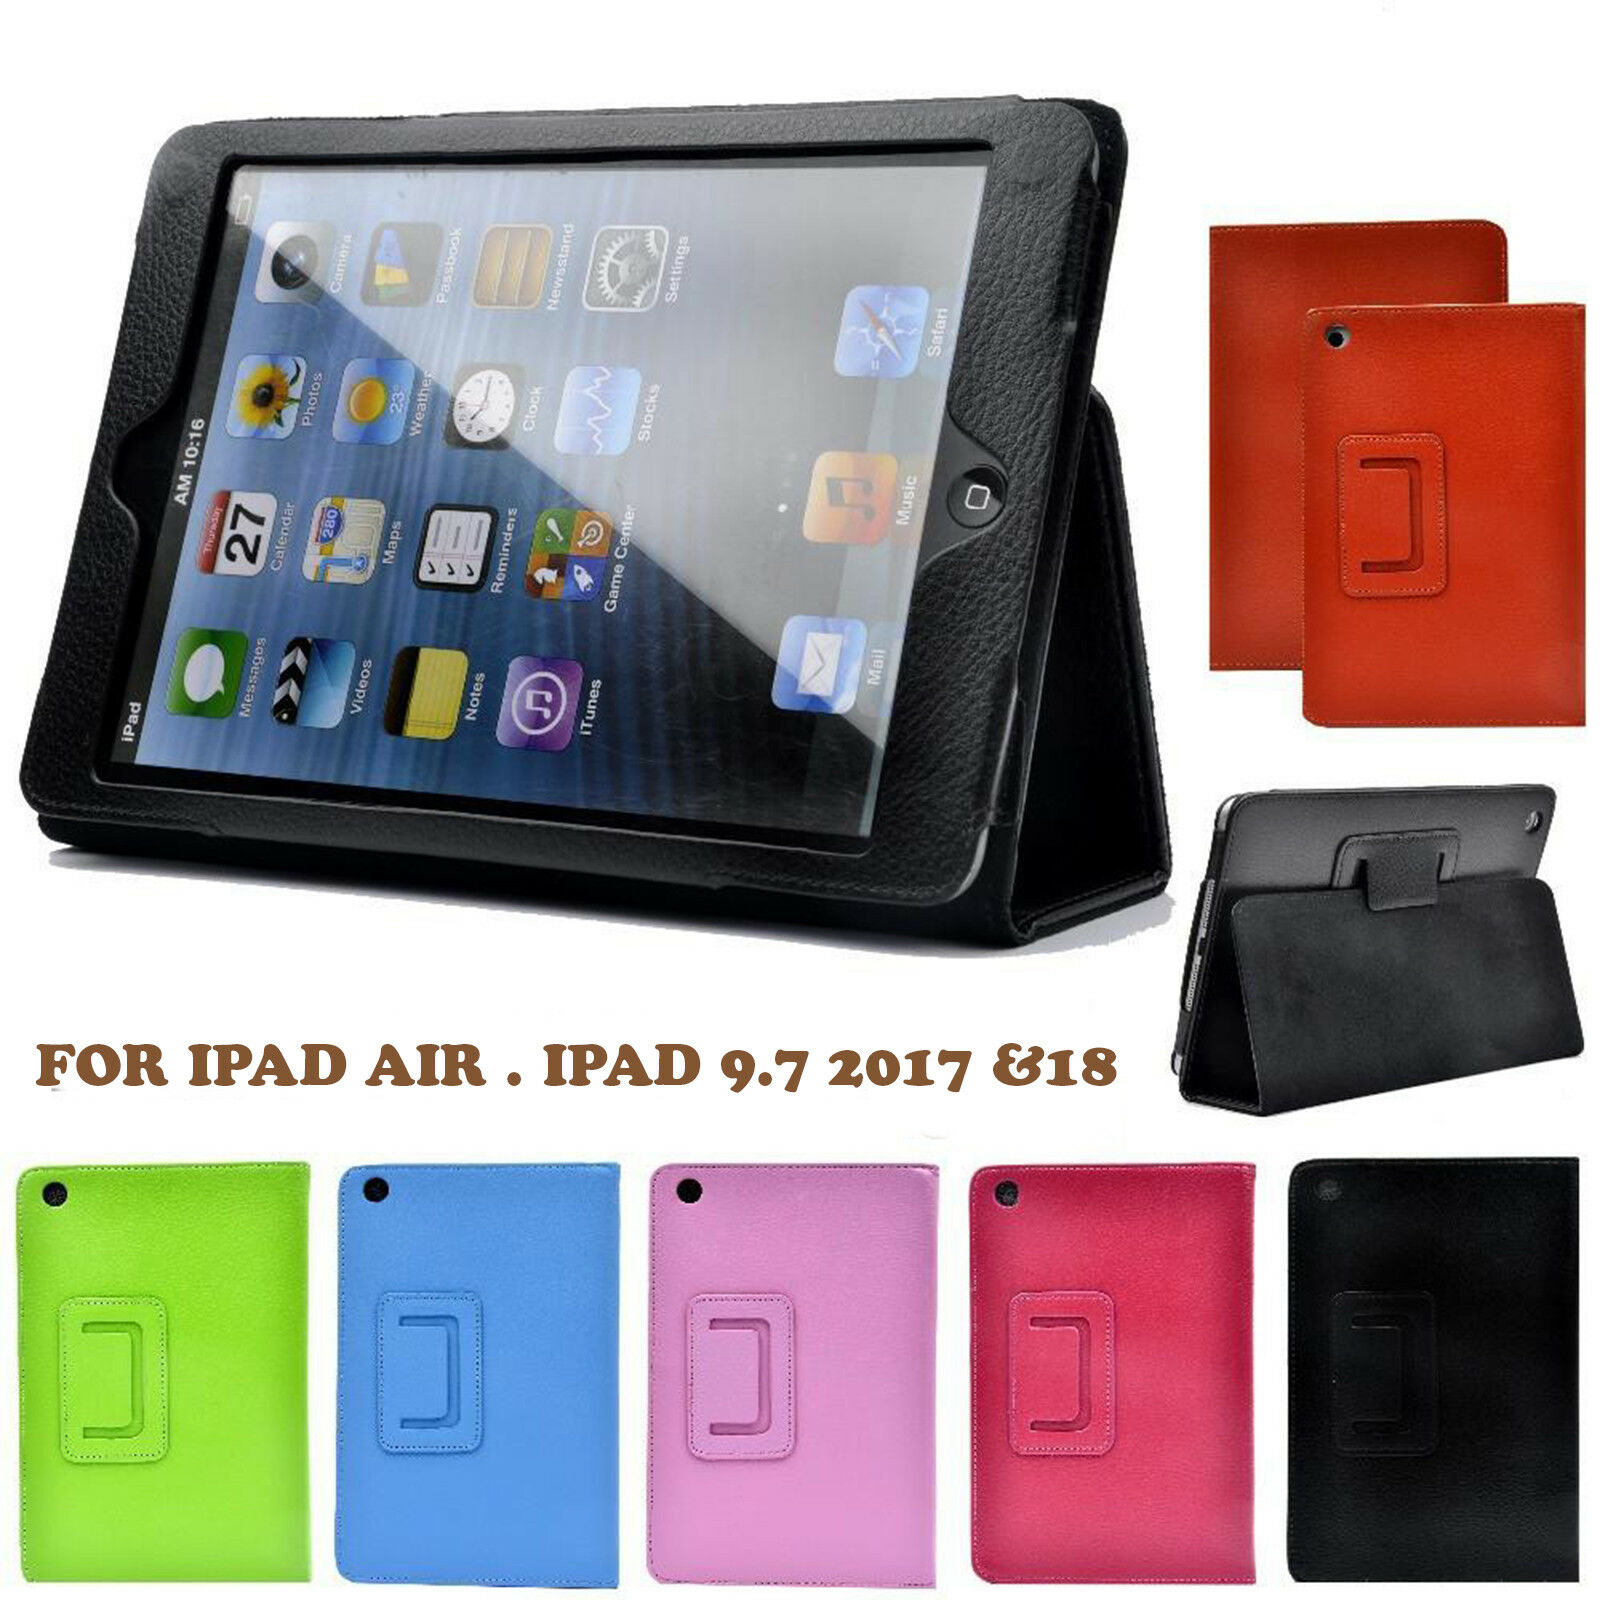 Genuine Apple ipad Rotating Stand Case Cover FOR  iPad Air, ipad 9.7 2017 & 2018